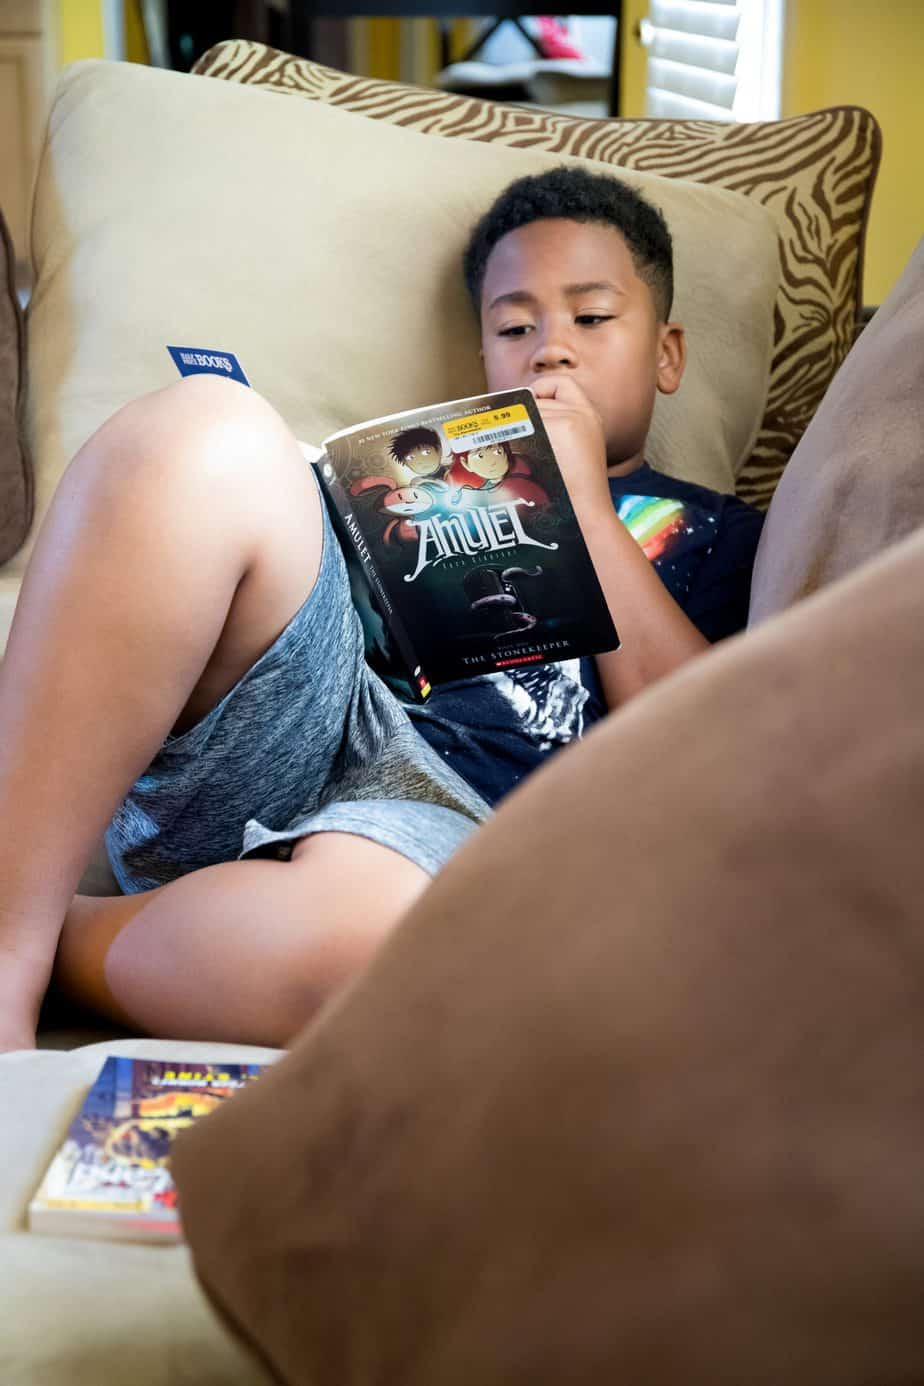 Best Chapter Books for Boys Ages 8-12 to Read This Summer